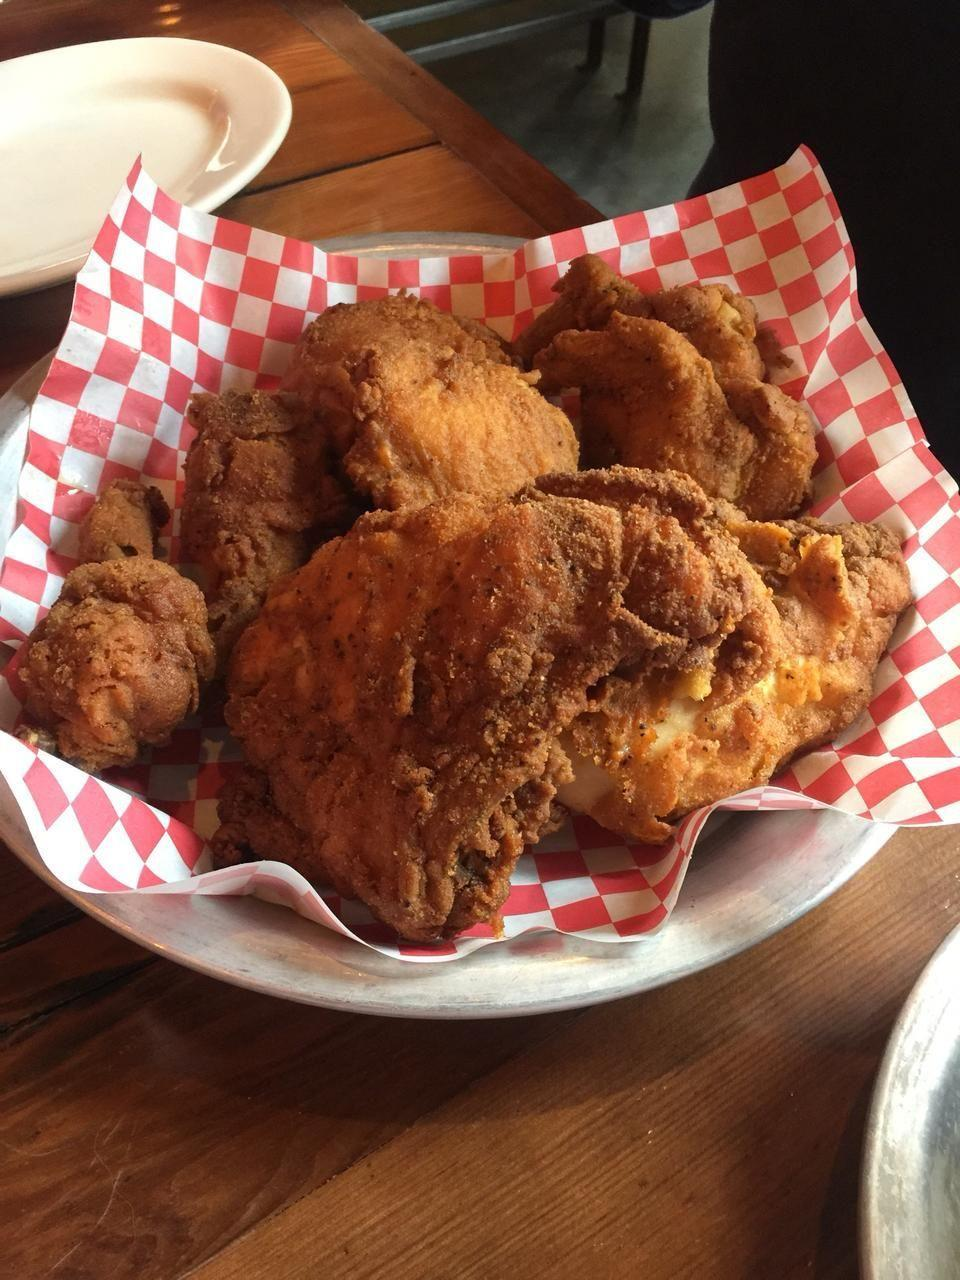 """<p><a href=""""https://www.tripadvisor.com/Restaurant_Review-g37209-d9772148-Reviews-The_Eagle_on_Mass_Ave-Indianapolis_Indiana.html"""" rel=""""nofollow noopener"""" target=""""_blank"""" data-ylk=""""slk:The Eagle"""" class=""""link rapid-noclick-resp"""">The Eagle</a>, Indianapolis</p><p>Be sure to try the <span class=""""entity tip_taste_match"""">honey sauce</span> that comes with the <span class=""""entity tip_taste_match"""">fried chicken</span>. I was hesitant at first, but it adds such a great flavor profile to the <span class=""""entity tip_taste_match"""">chicken</span> resulting in a sweet, savory, heated bite!<span class=""""redactor-invisible-space""""> - Foursquare user <a href=""""https://foursquare.com/inplaywright"""" rel=""""nofollow noopener"""" target=""""_blank"""" data-ylk=""""slk:Tony McDonald"""" class=""""link rapid-noclick-resp"""">Tony McDonald</a></span></p>"""